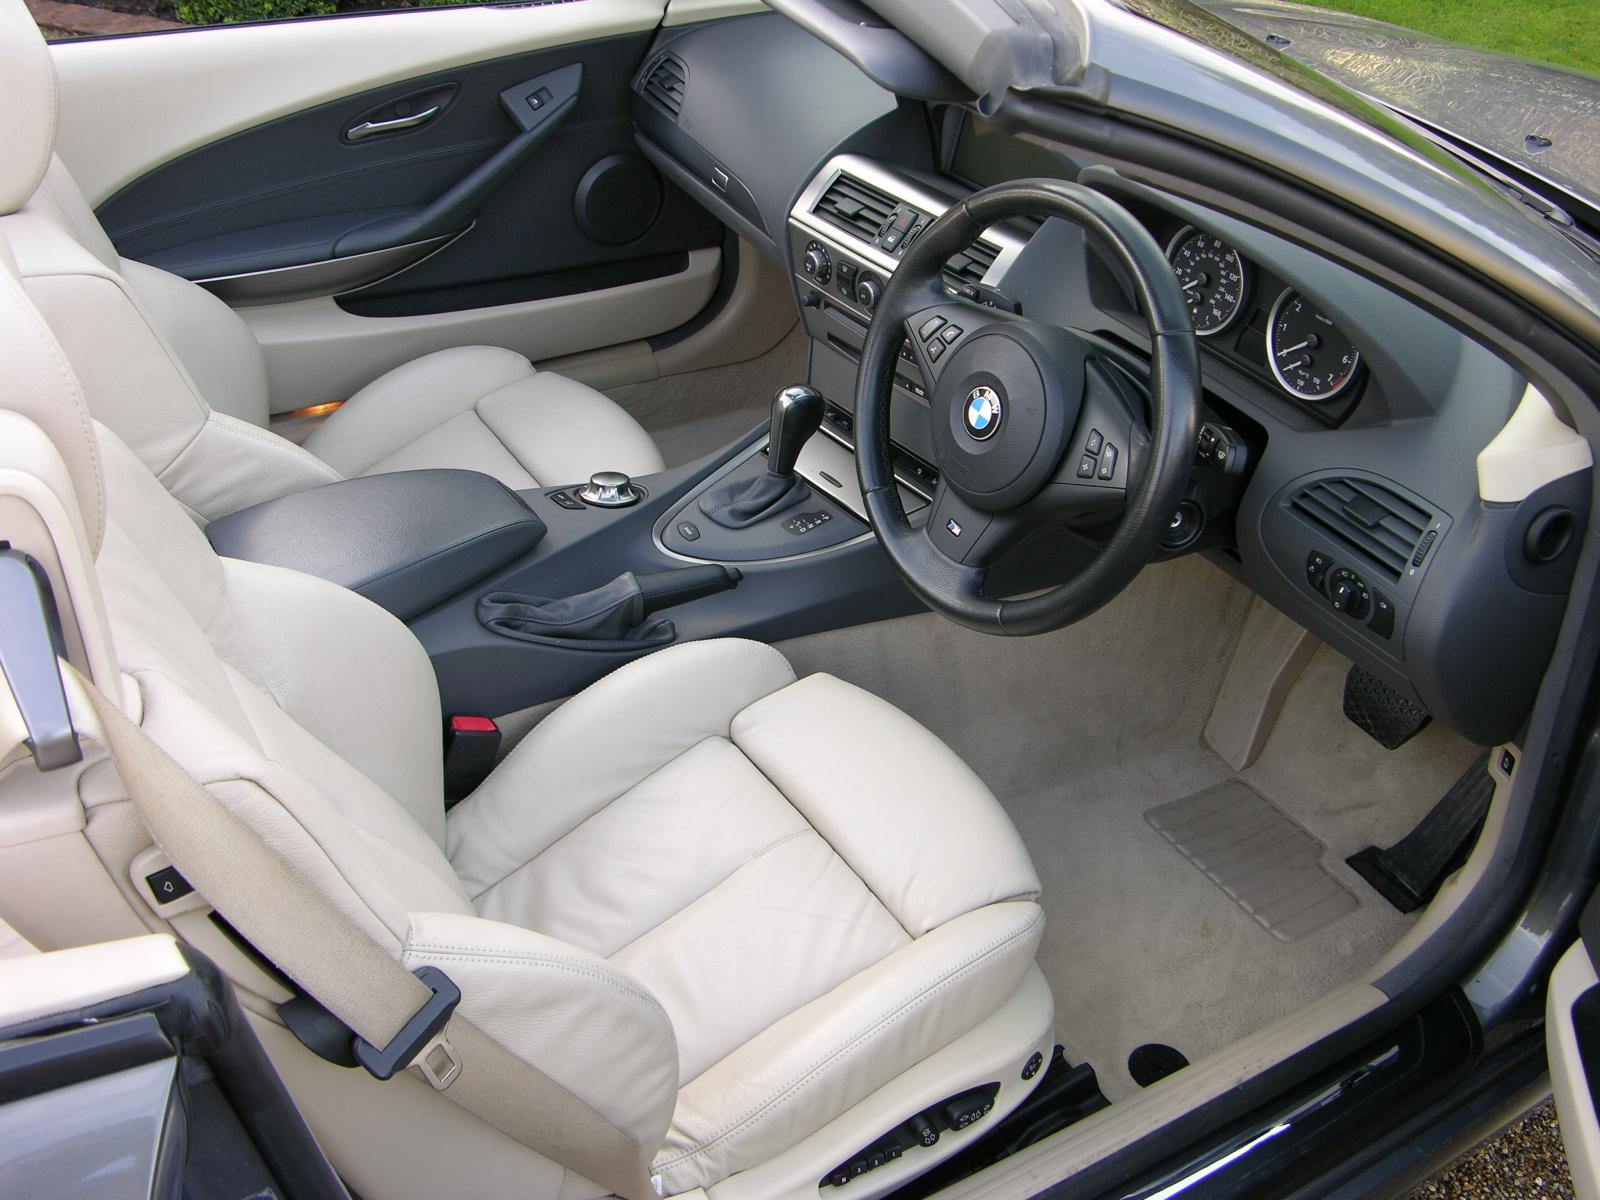 bmw interior repair for bmw 5 series f10 carbon car interior repair sticker parts racing bmw. Black Bedroom Furniture Sets. Home Design Ideas